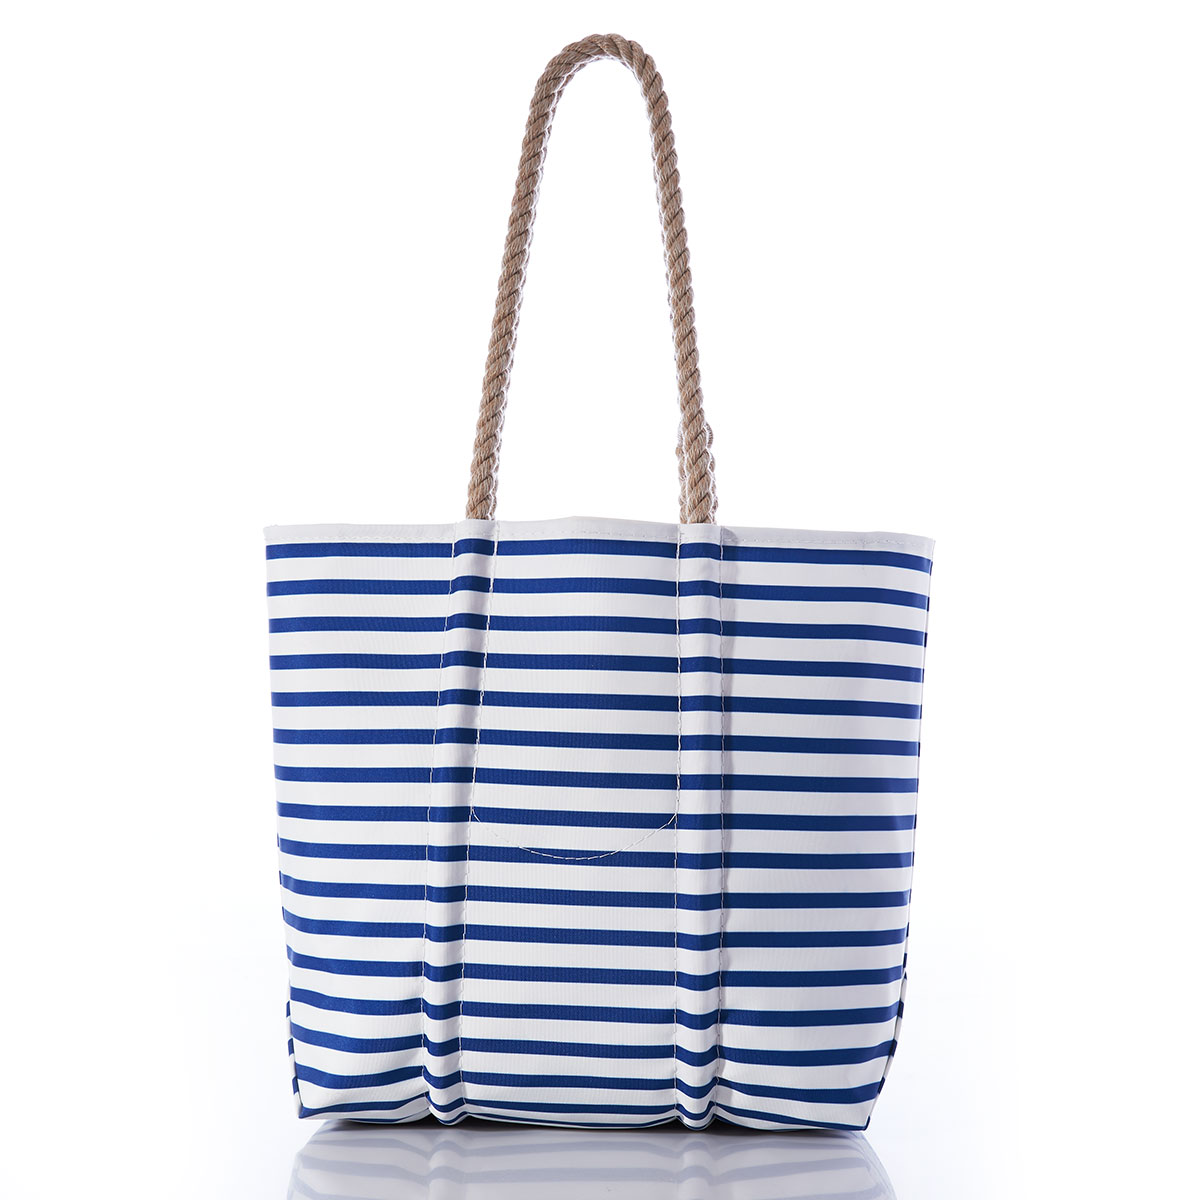 back of tote bag with stripes of royal blue and white, and a hemp rope handle